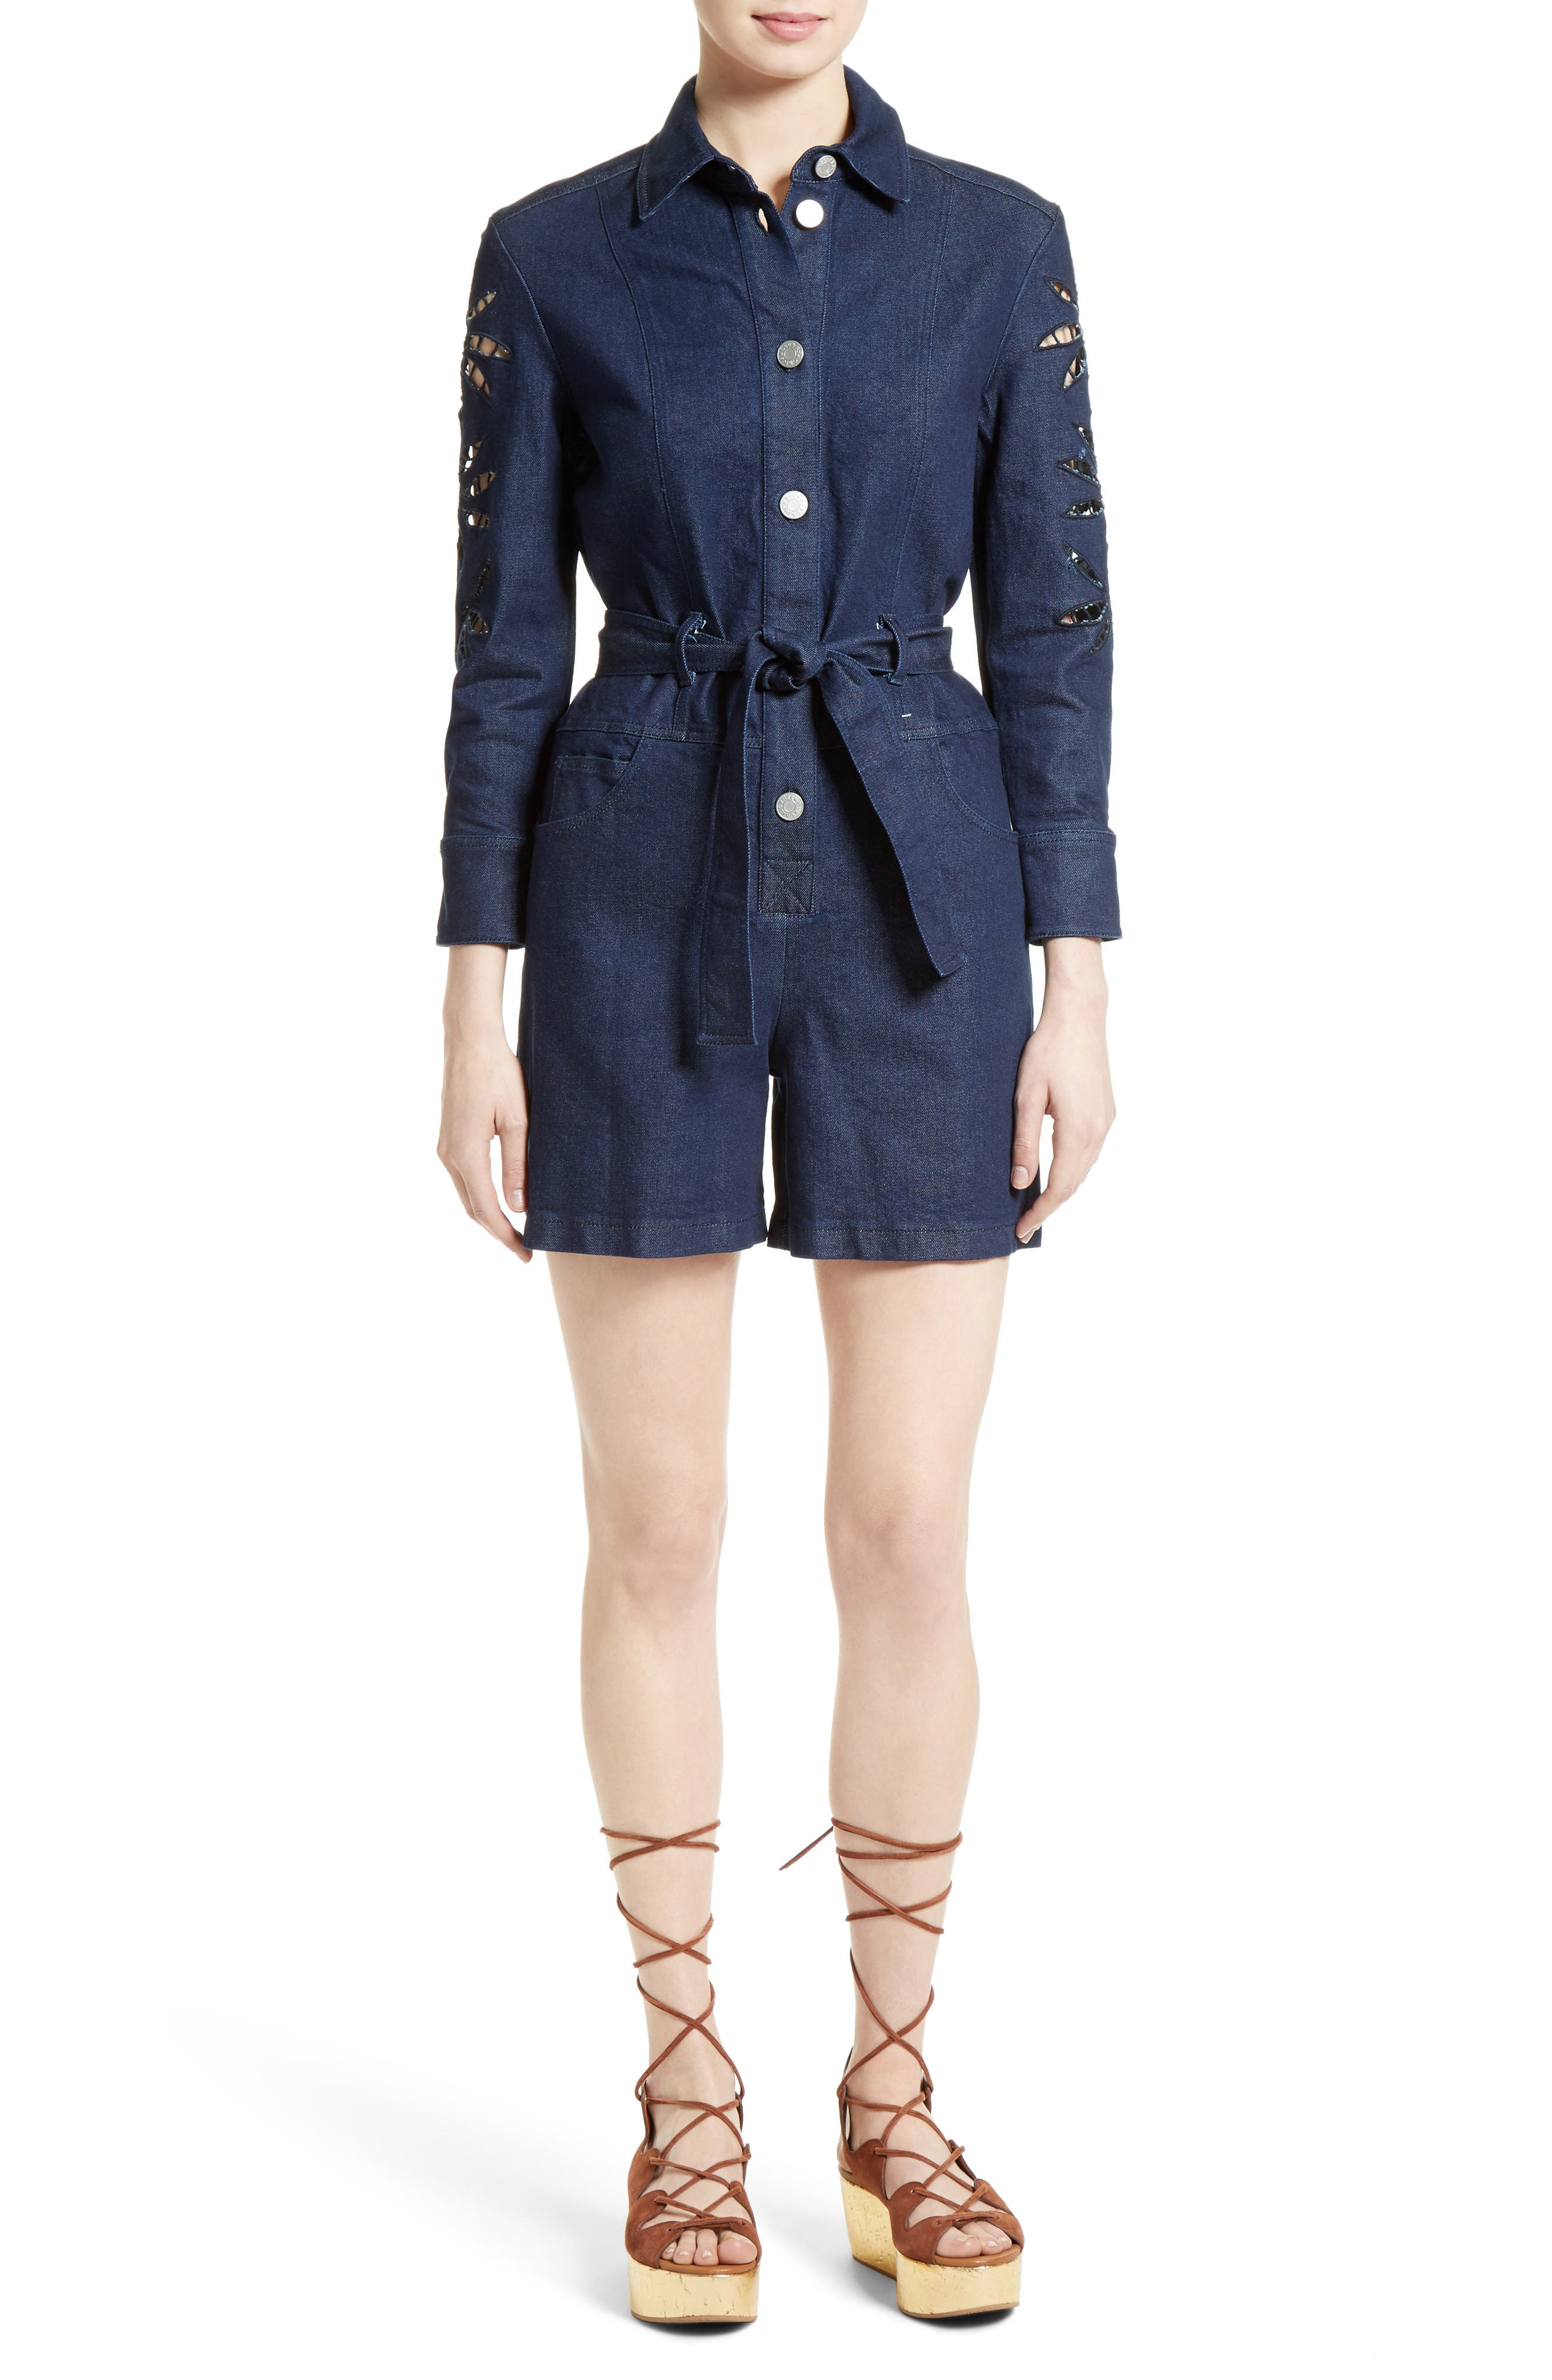 Main Image - See by Chloé Embroidered Denim Romper (Nordstrom Exclusive)